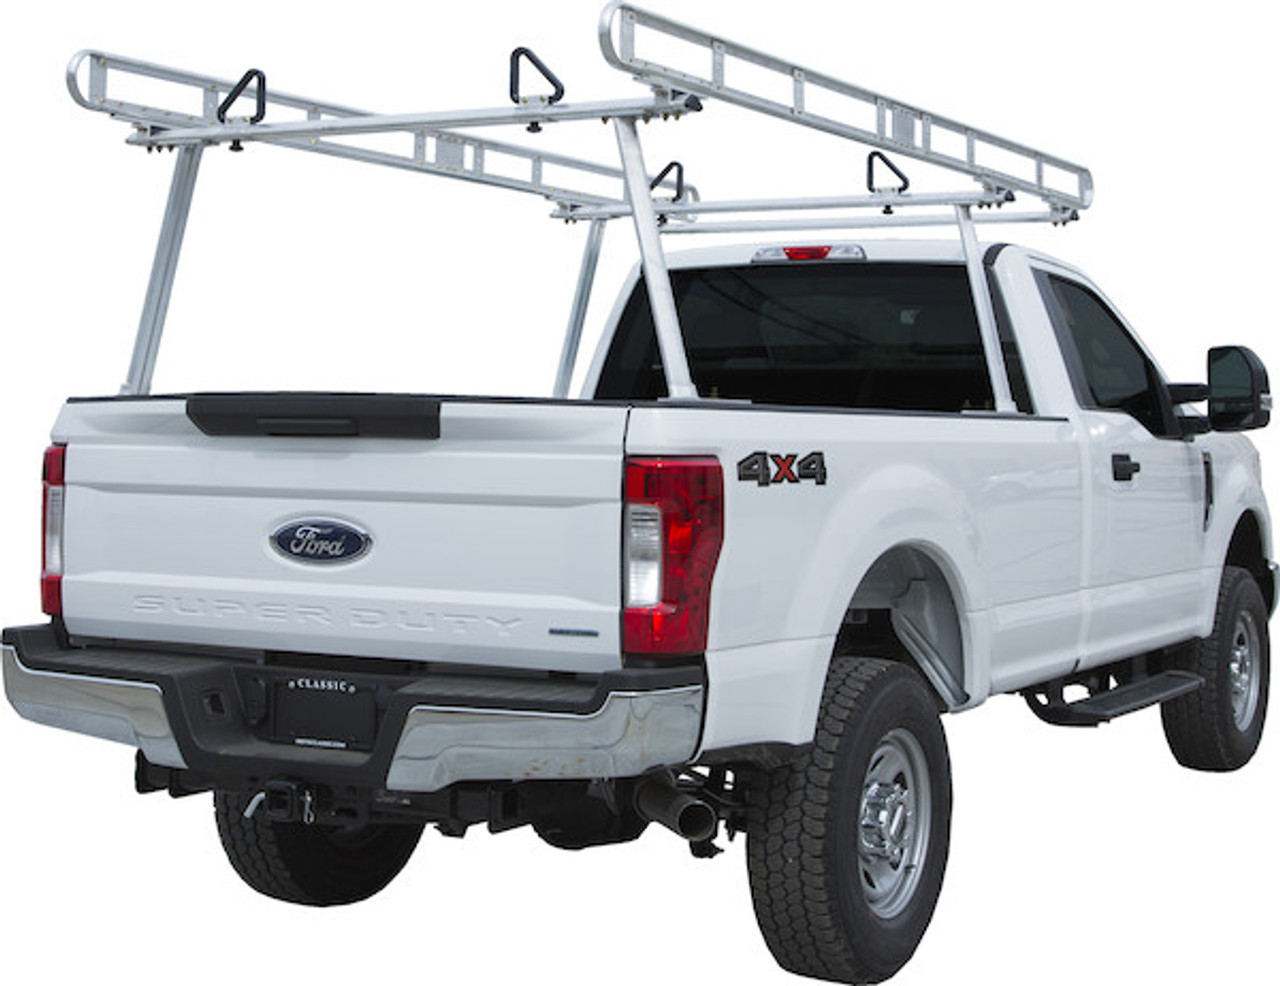 BUYERS 1501400 Clear Anodized Aluminum Truck Ladder Rack Picture # 3